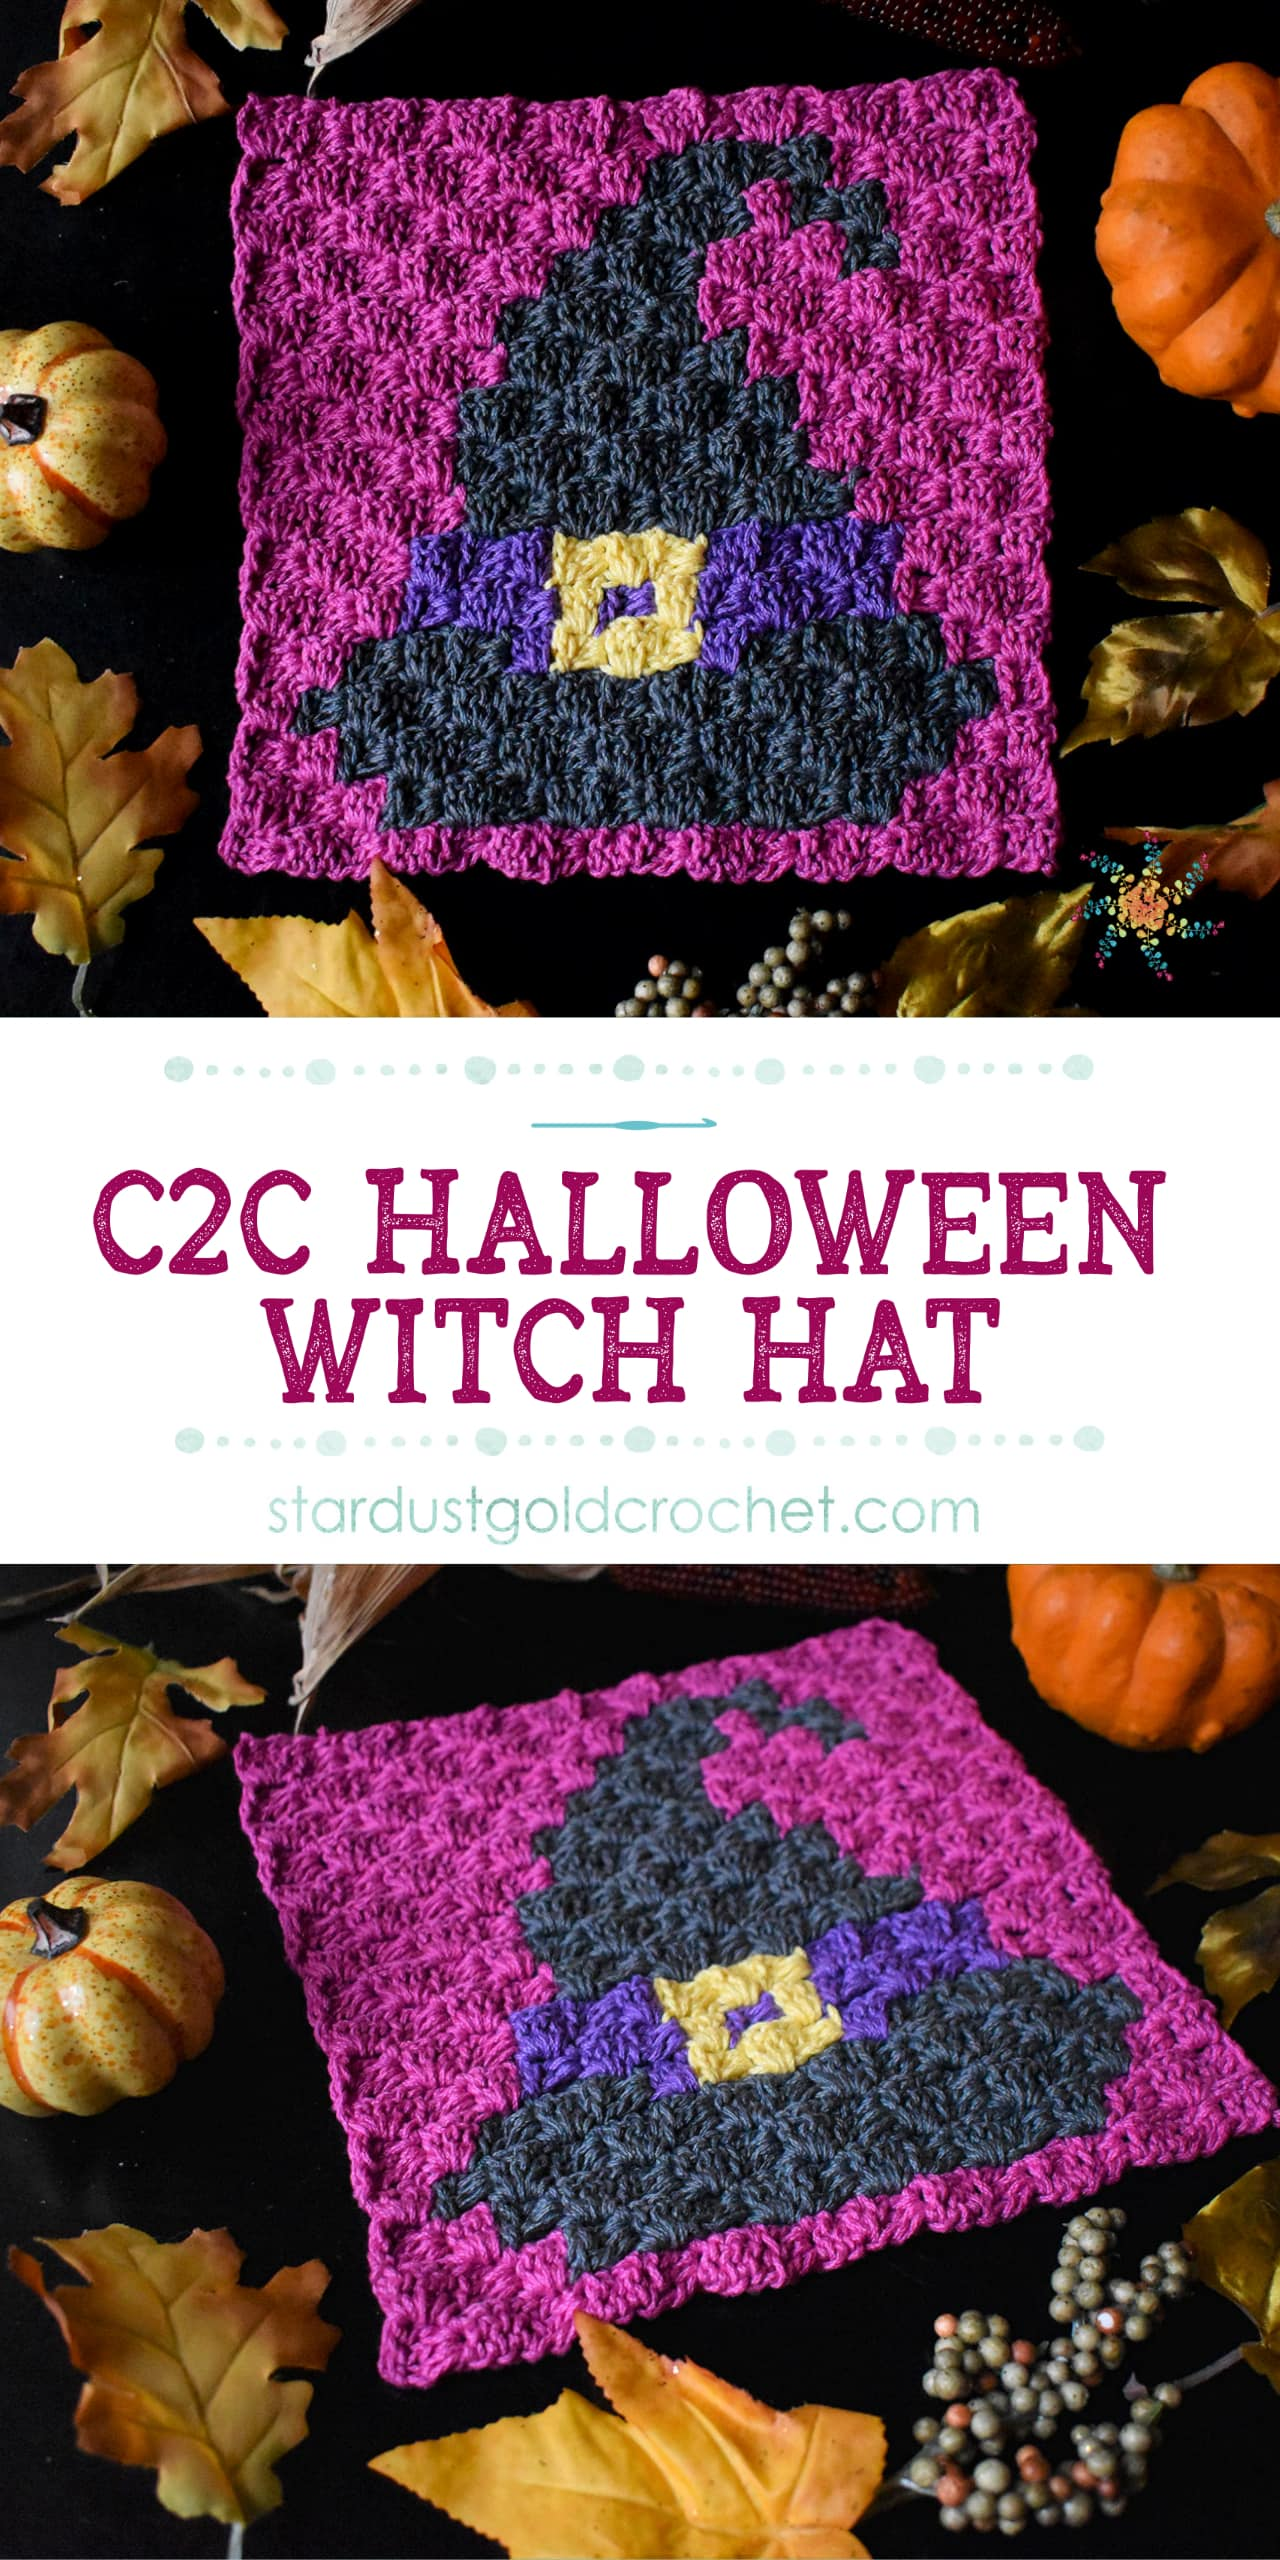 C2C Witch Hat